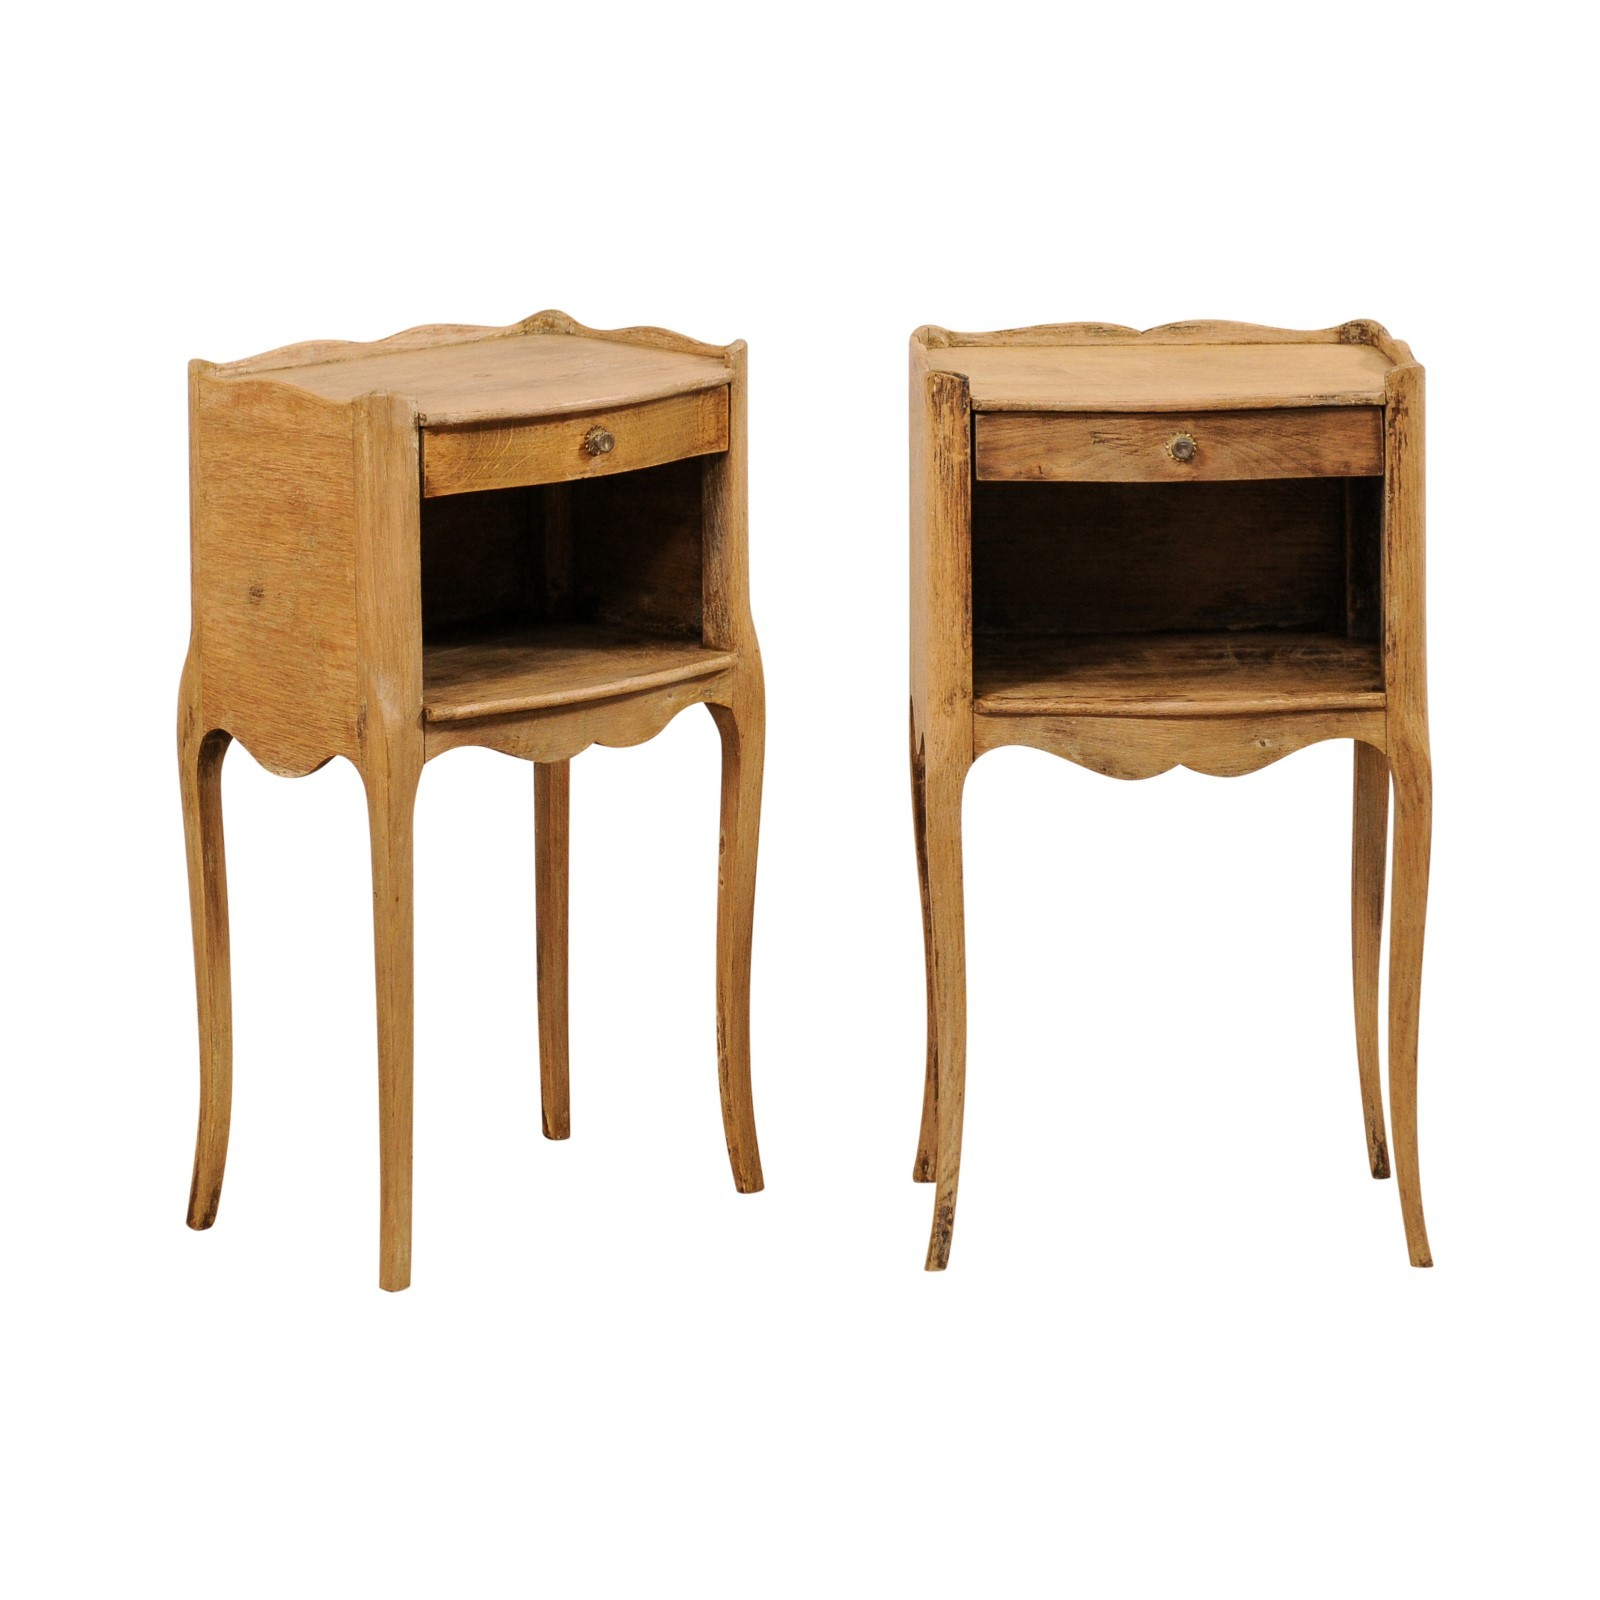 A Pair of French Bleached-Wood End Tables